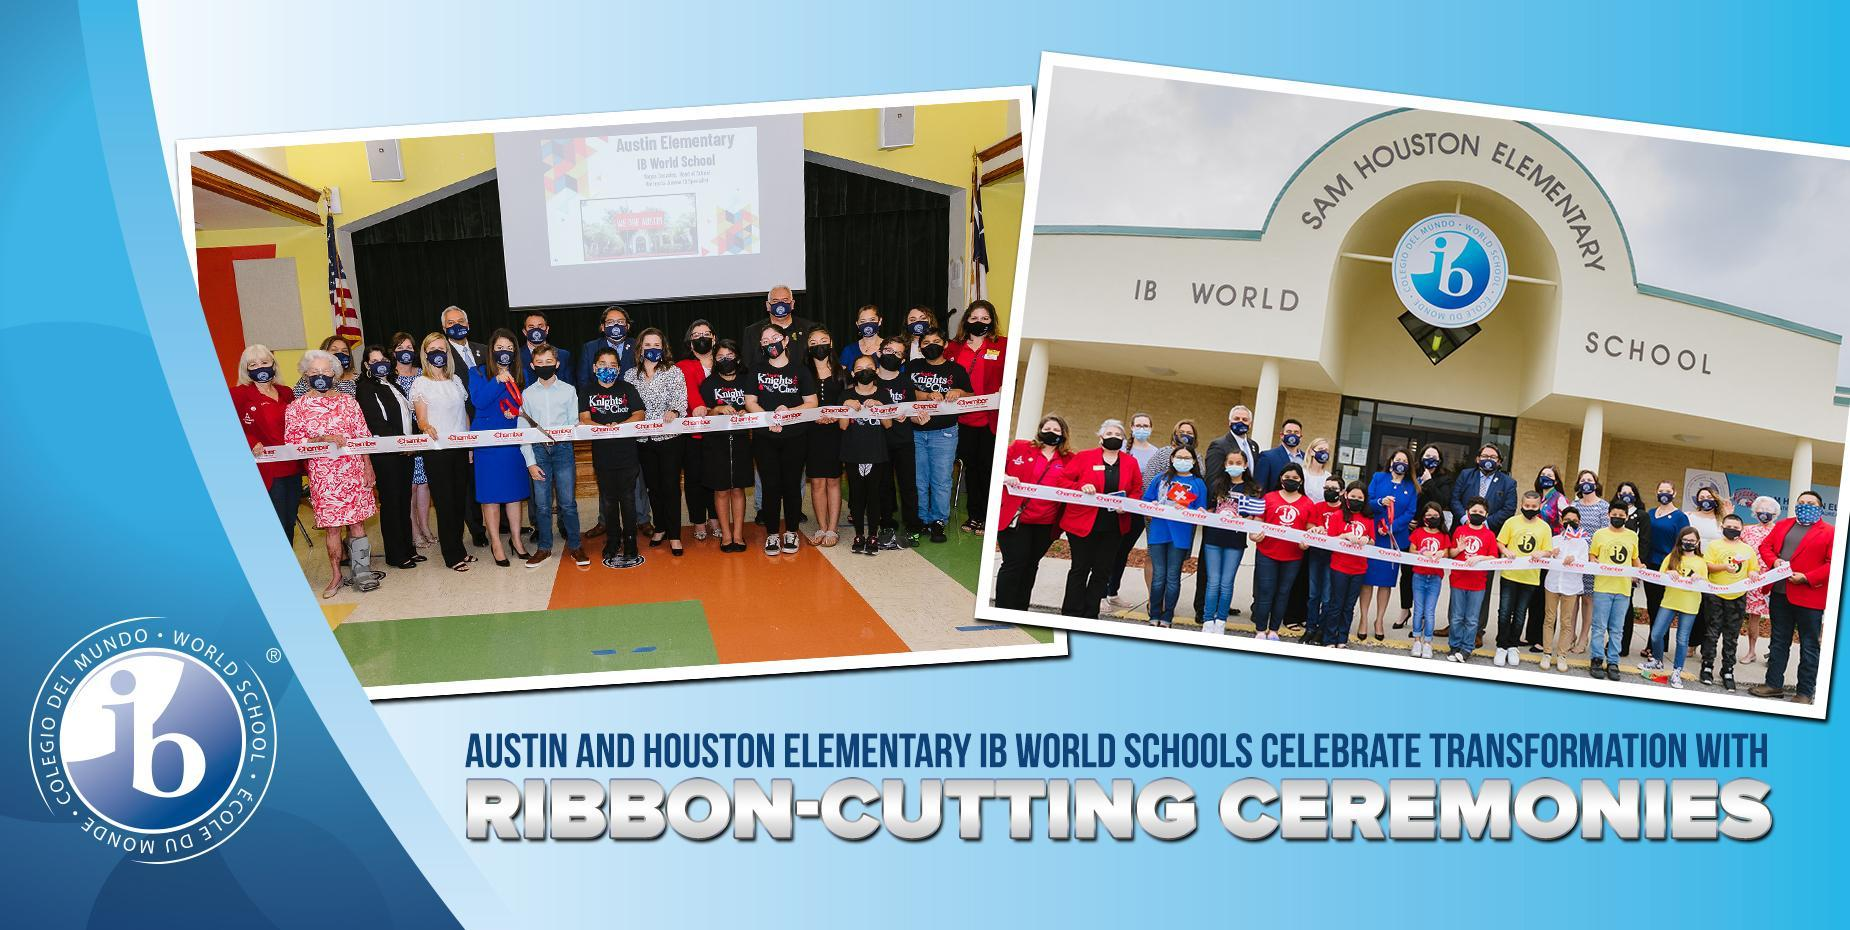 Austin and Houston Elementary IB World Schools celebrate transformation with ribbon-cutting ceremonies